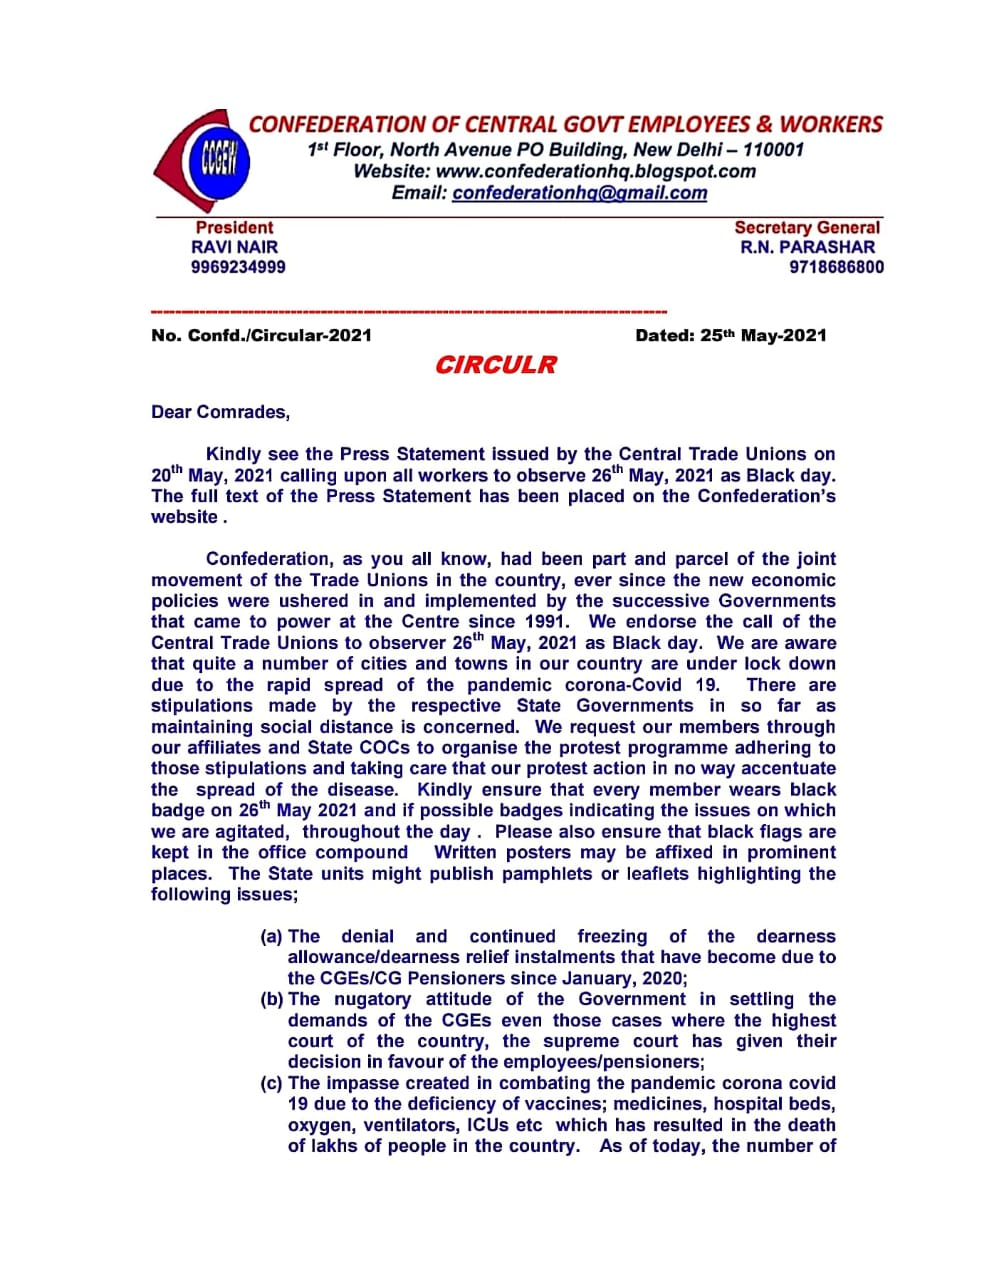 Denial and continued freezing of the DA/DR and other issues: CG Confederation endorse the call of CTU to observe Black Day on 26.05.2021